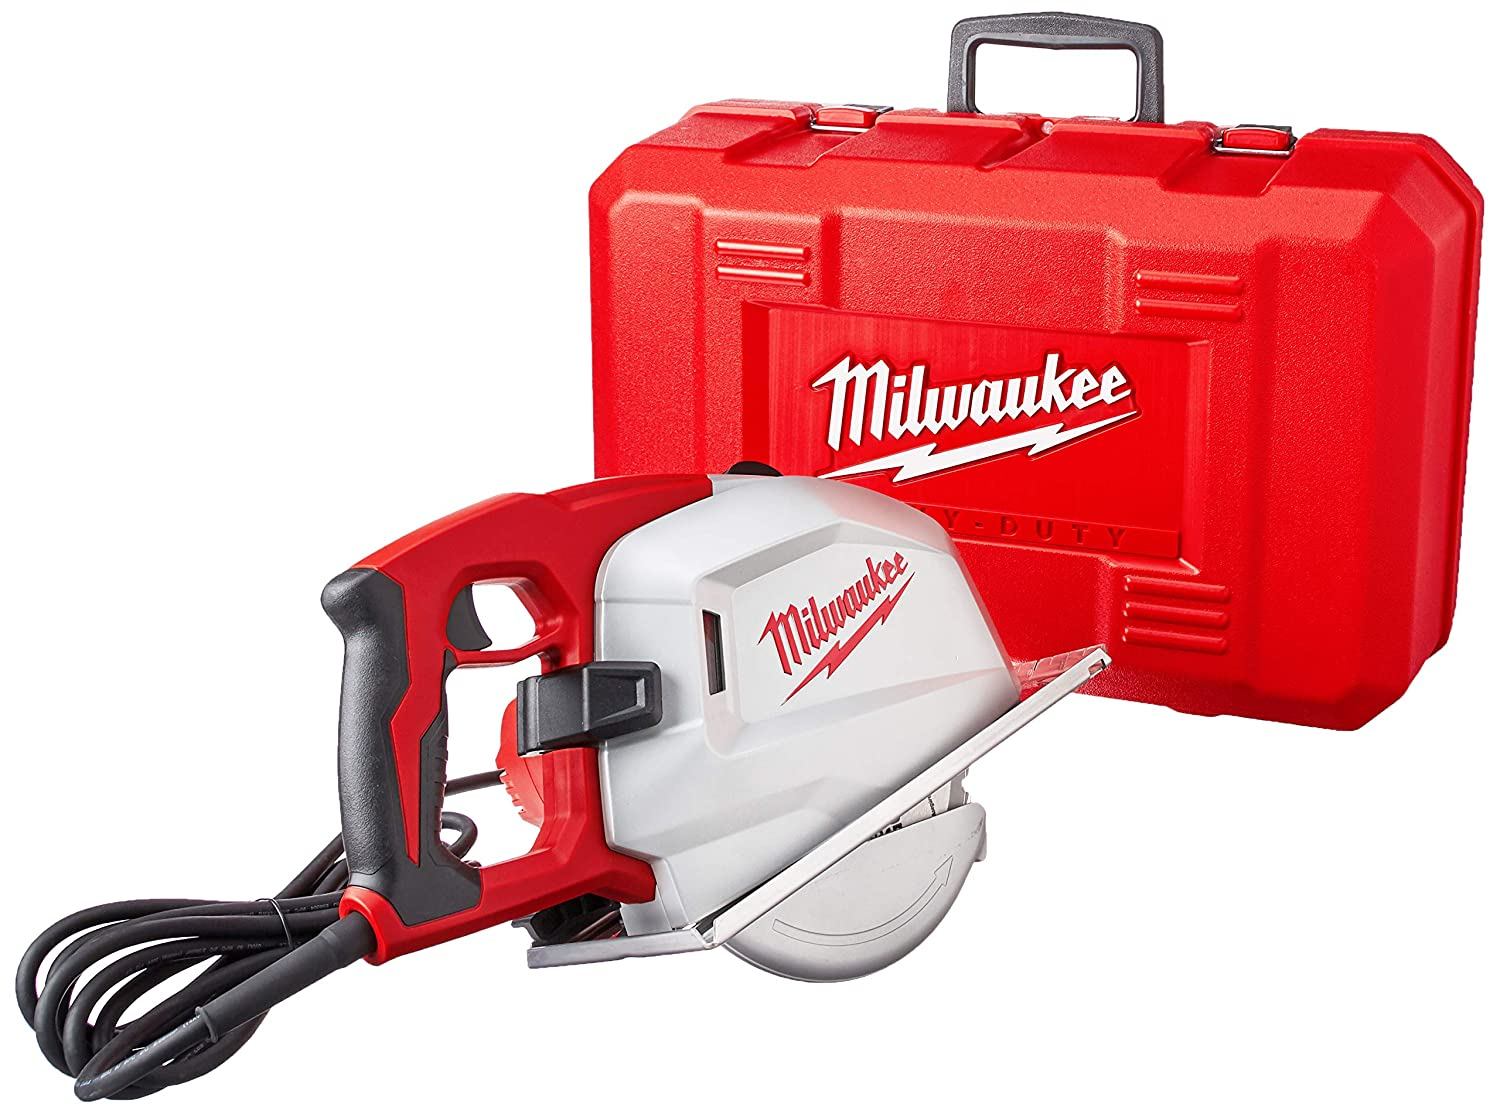 Milwaukee 6370-21 13 Amp 8-Inch Metal Cutting Circular Saw